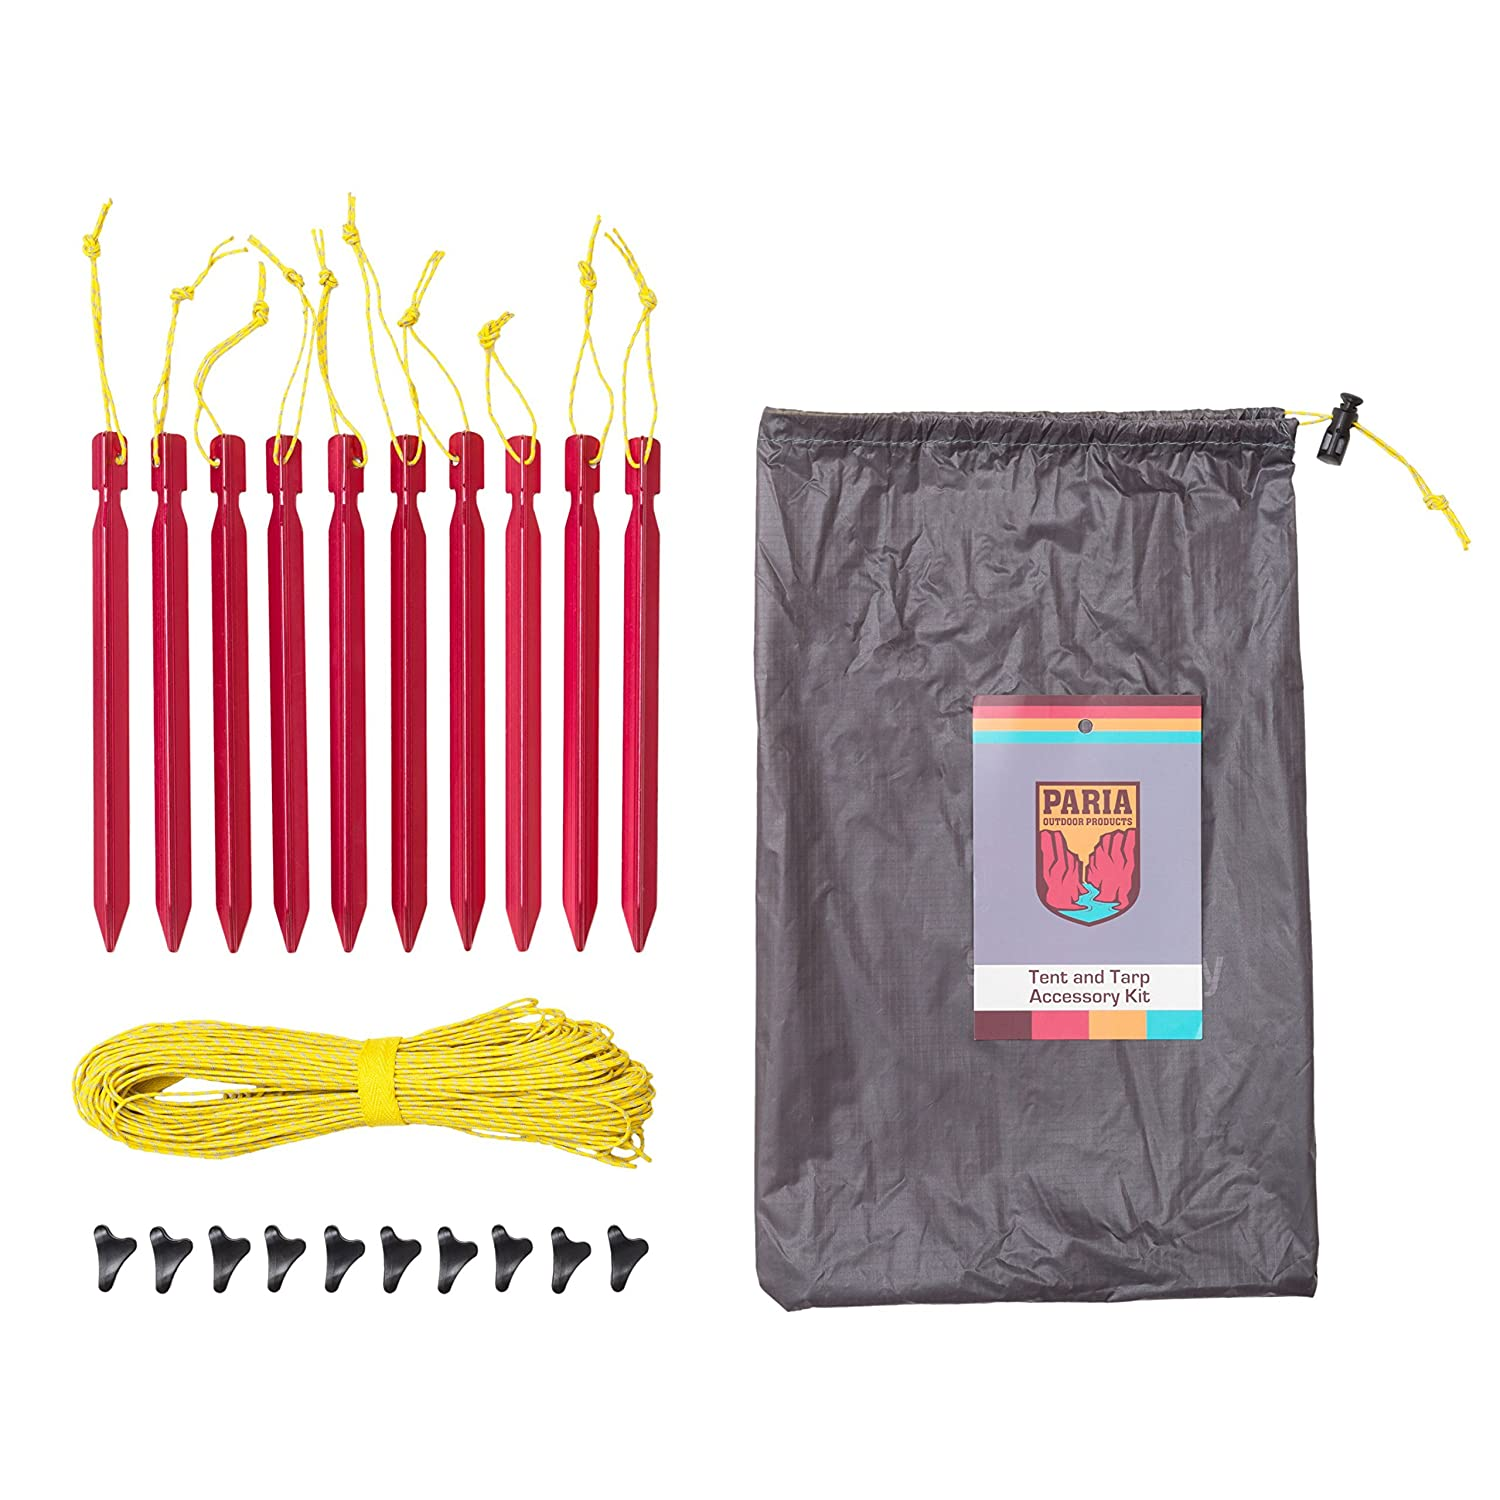 Amazon.com Paria Outdoor Products Tent and Tarp Accessory Kit Ultralight and Strong Dyneema Guy Line Micro-Lok Adjuster and Aluminum Alloy Stake Kit ...  sc 1 st  Amazon.com & Amazon.com: Paria Outdoor Products Tent and Tarp Accessory Kit ...